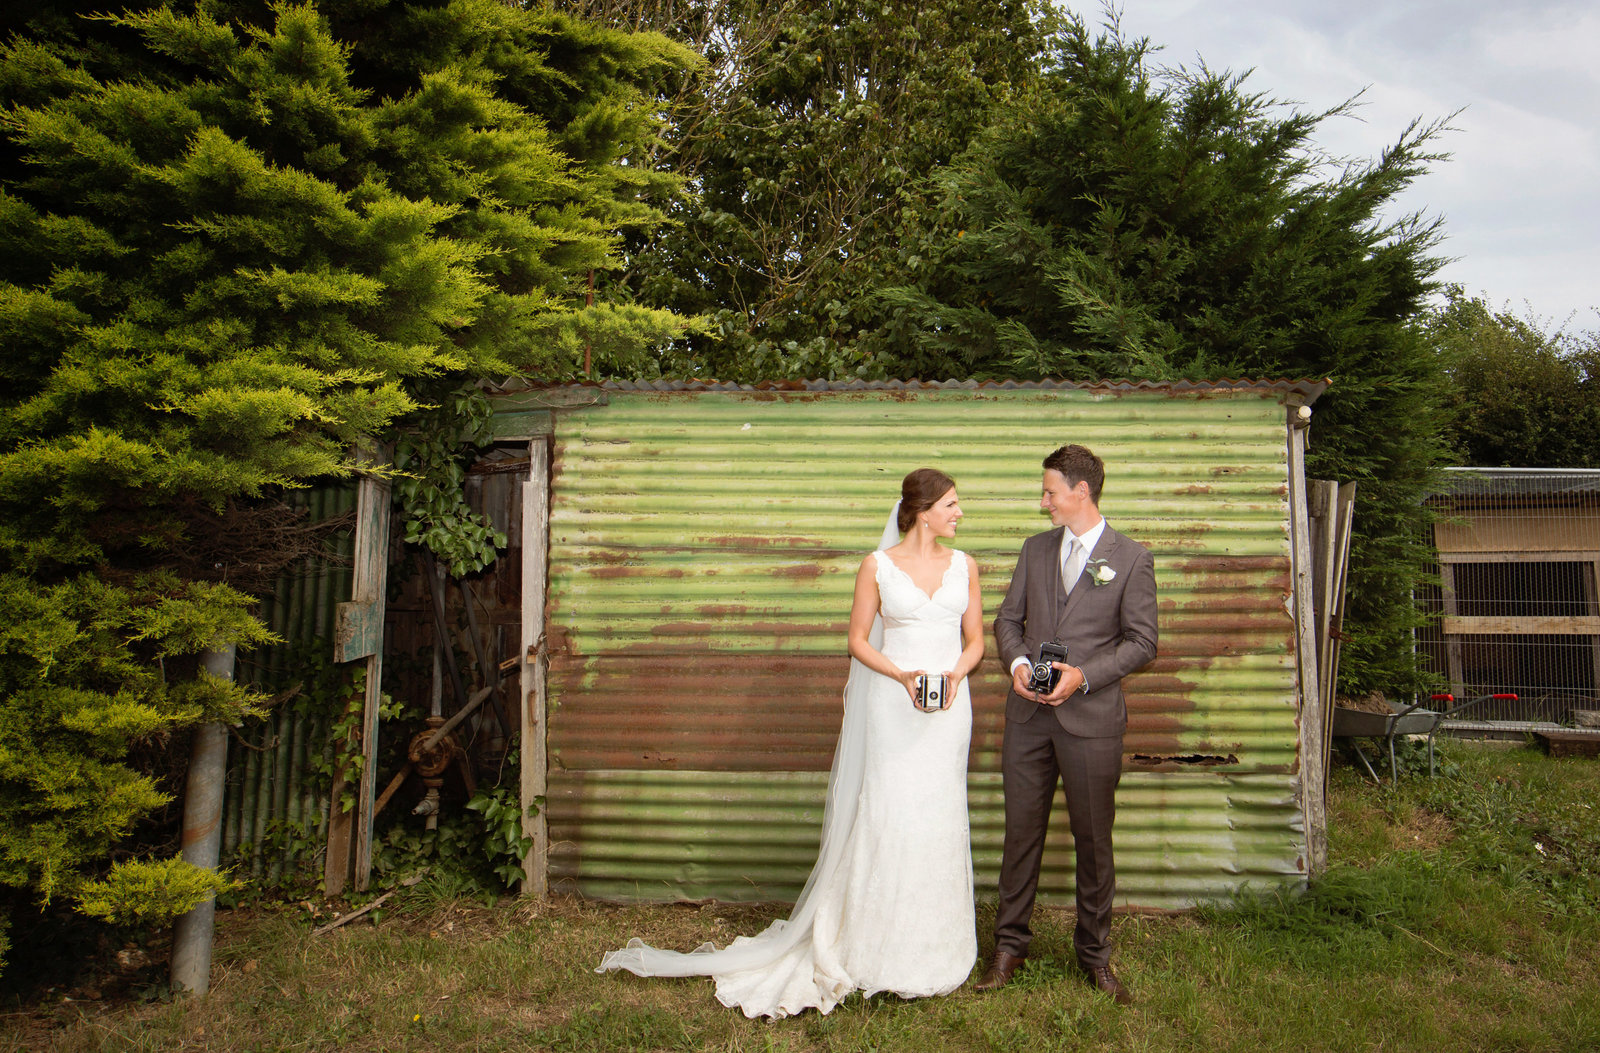 adorlee-0732-southend-barns-wedding-photographer-chichester-west-sussex